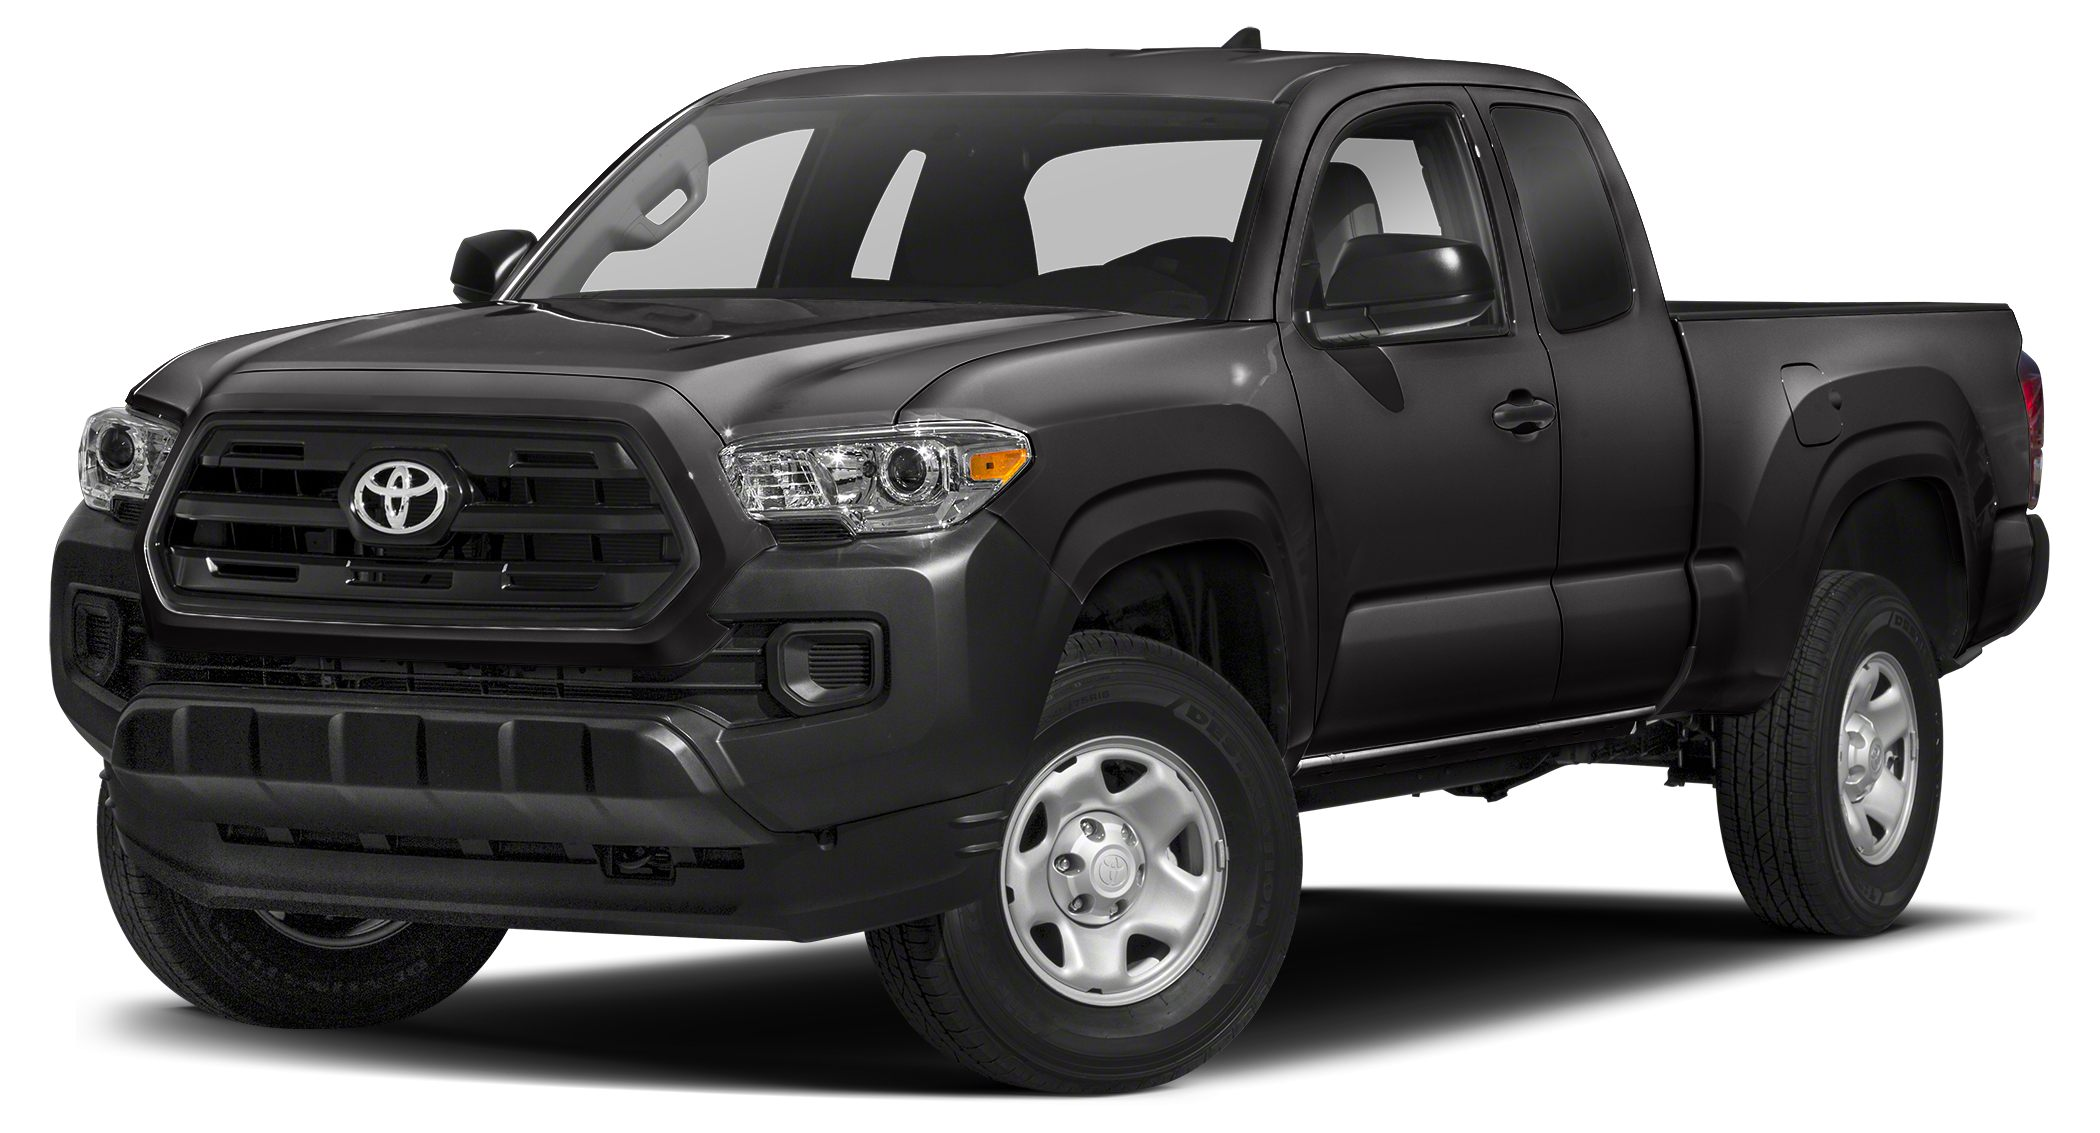 2017 Toyota Tacoma SR MAGNETIC GRAY METALLIC exterior and CEMENT GRAY interior SR trim EPA 21 MP